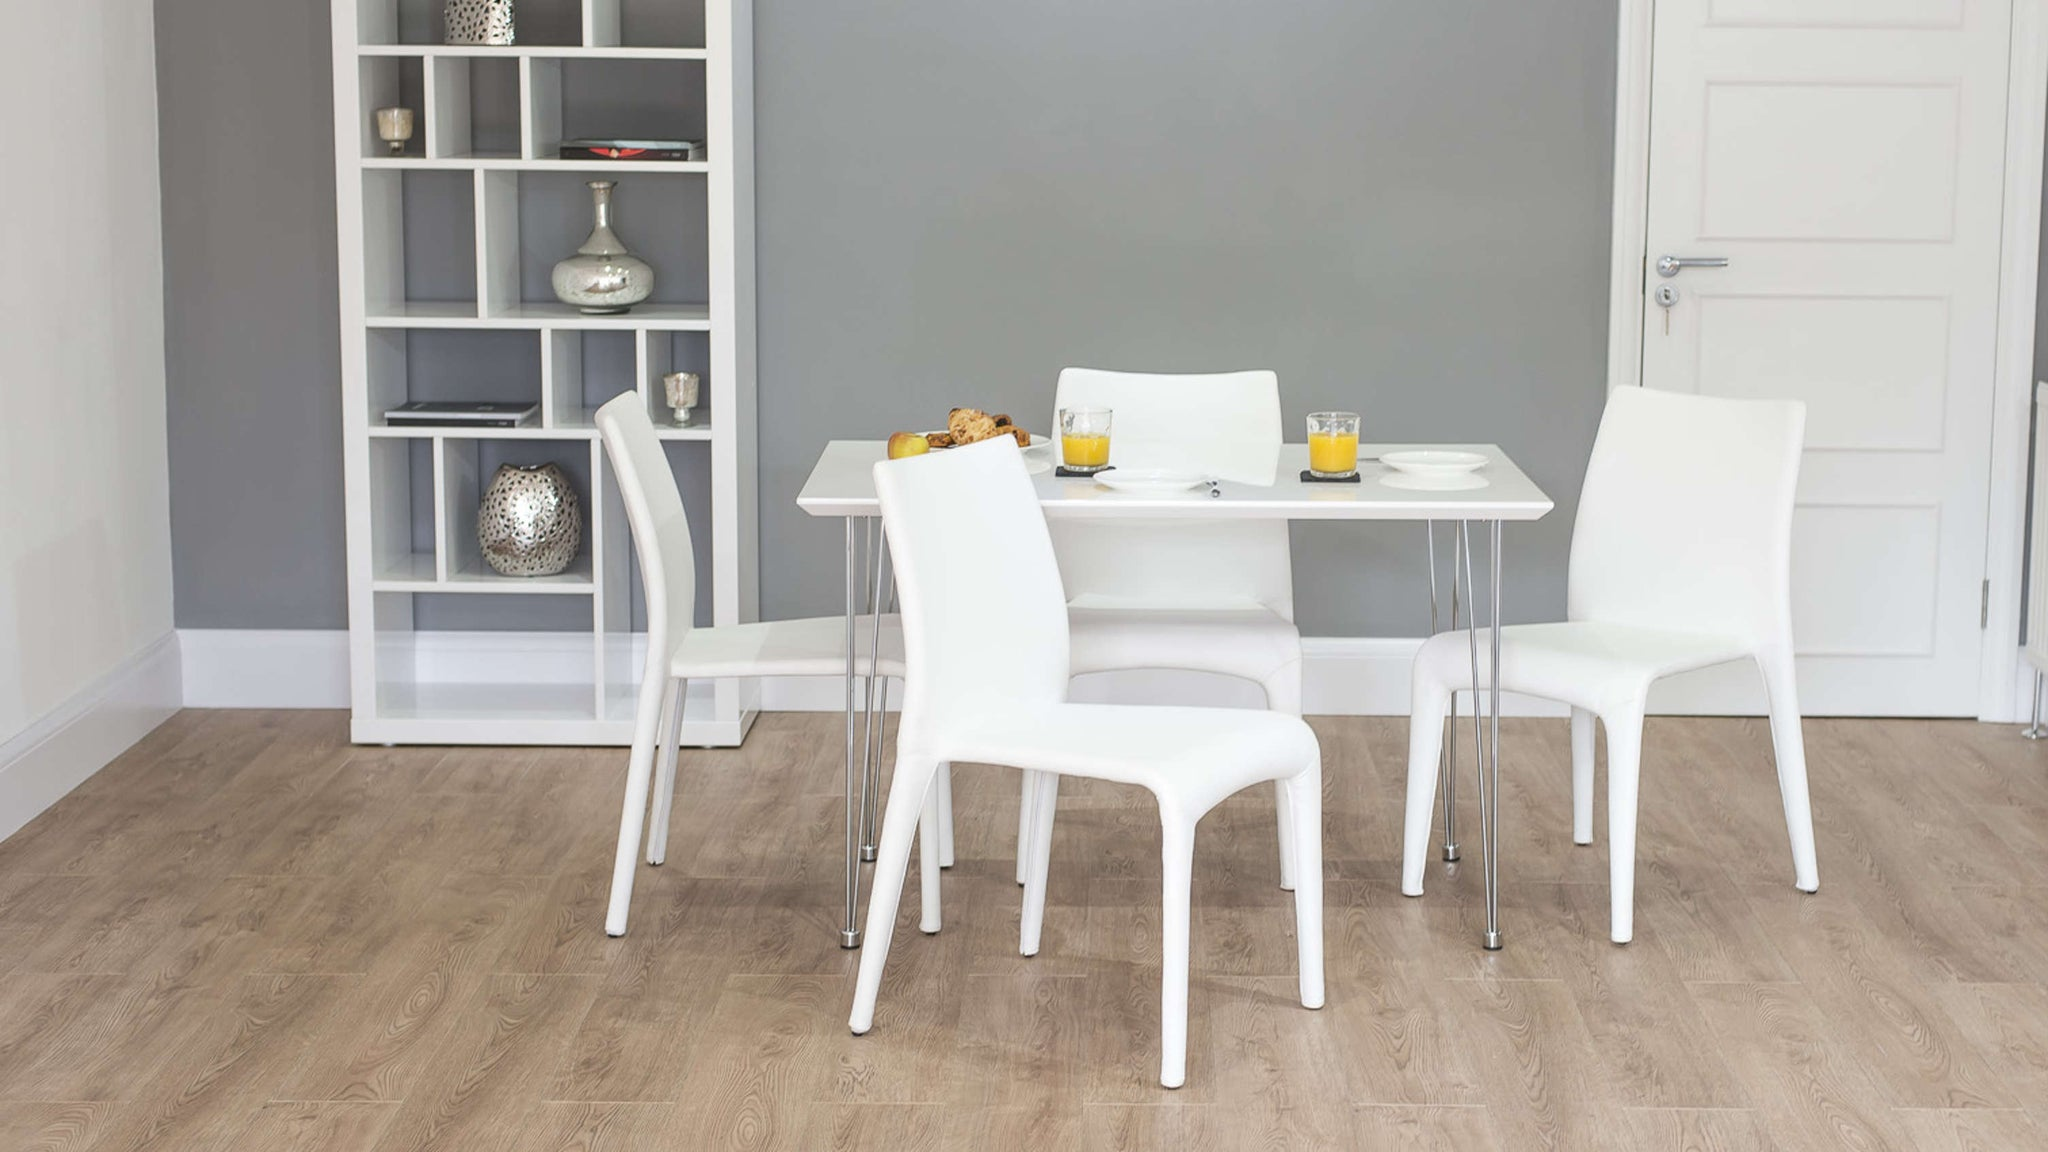 Comfortable Dining Chairs and Glossy Dining Table